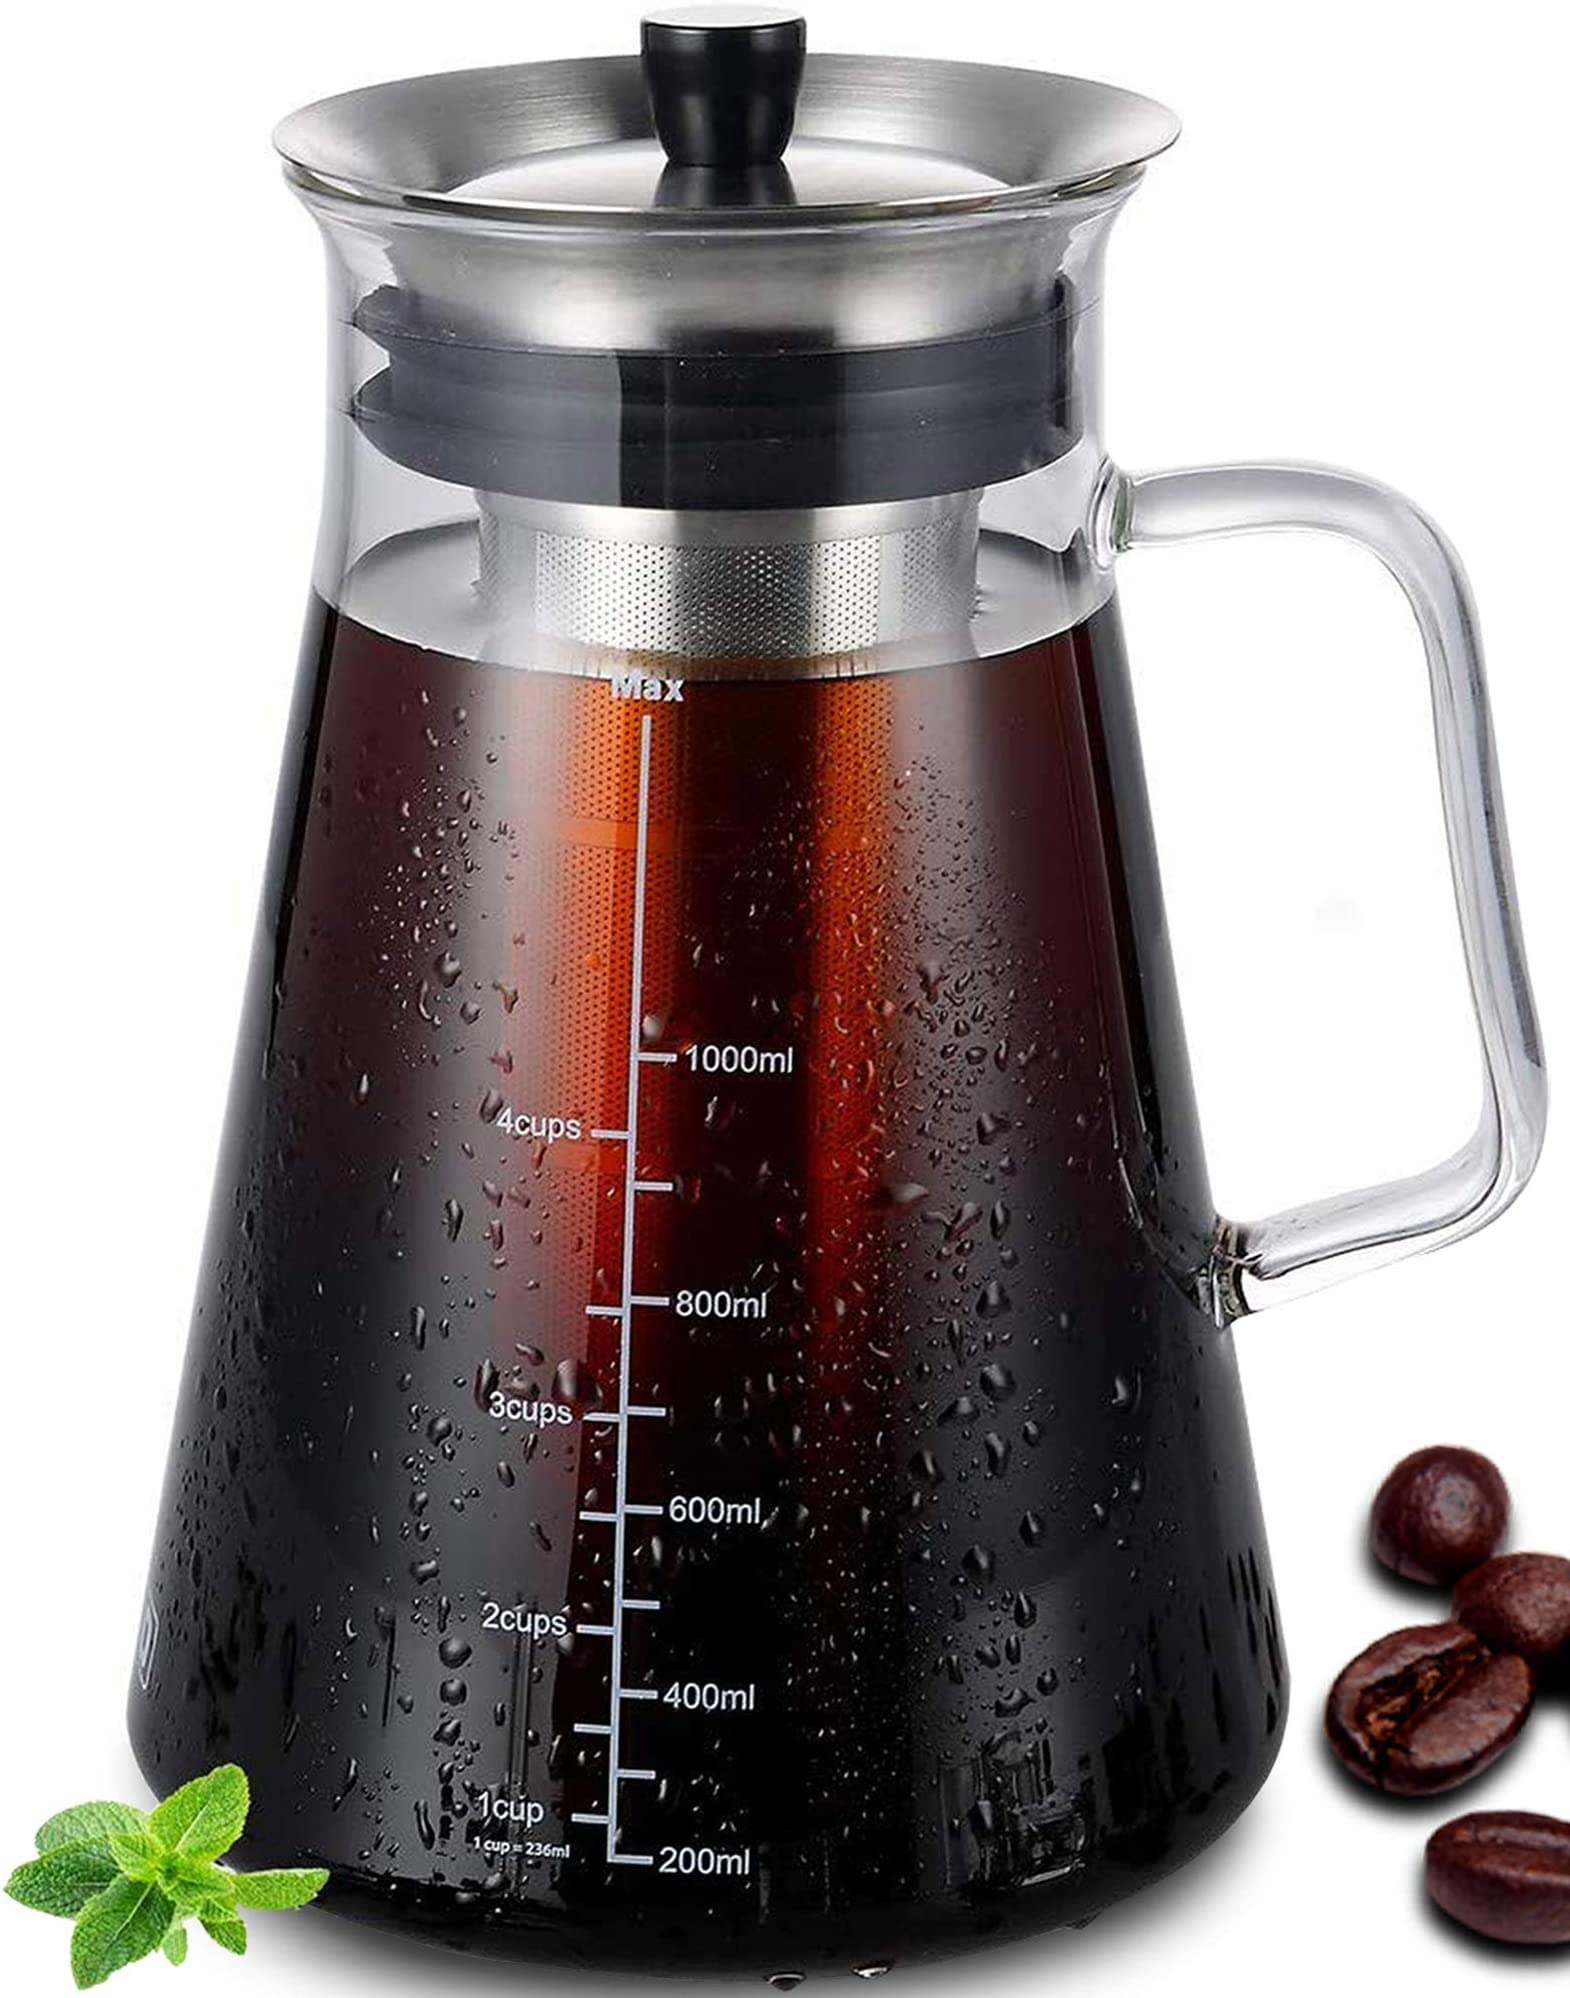 Aquach Cold Brew Coffee Maker 34oz (1L) with Hand-Blown Glass Pitcher, Stainless Steel Filter Removable, for Iced Coffee & Cold Brew Tea. Airtight Lid / Dishwasher Safe